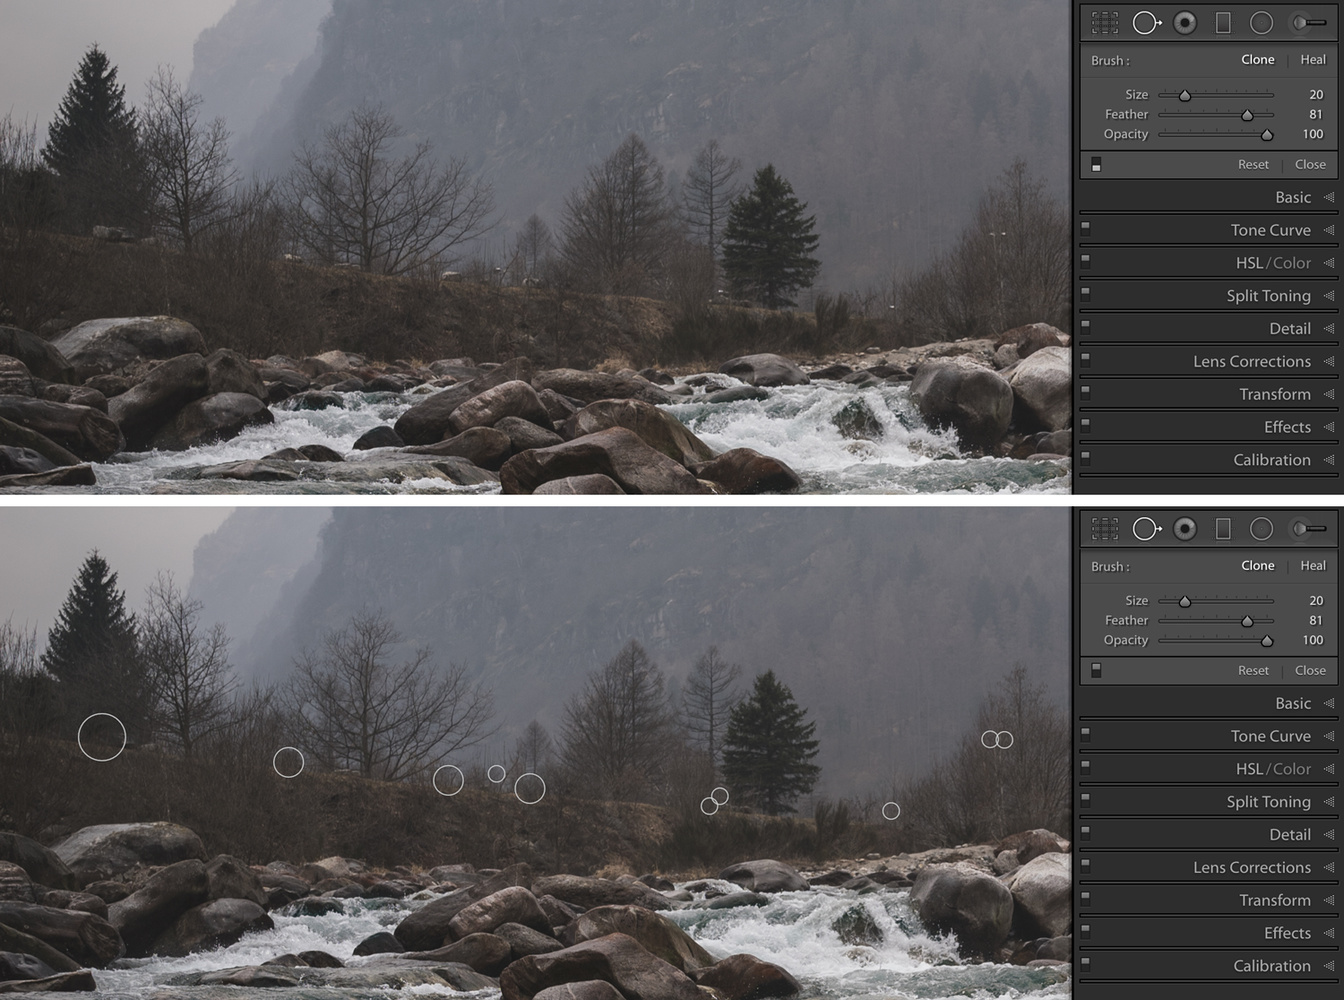 Lightroom cloning out distractions